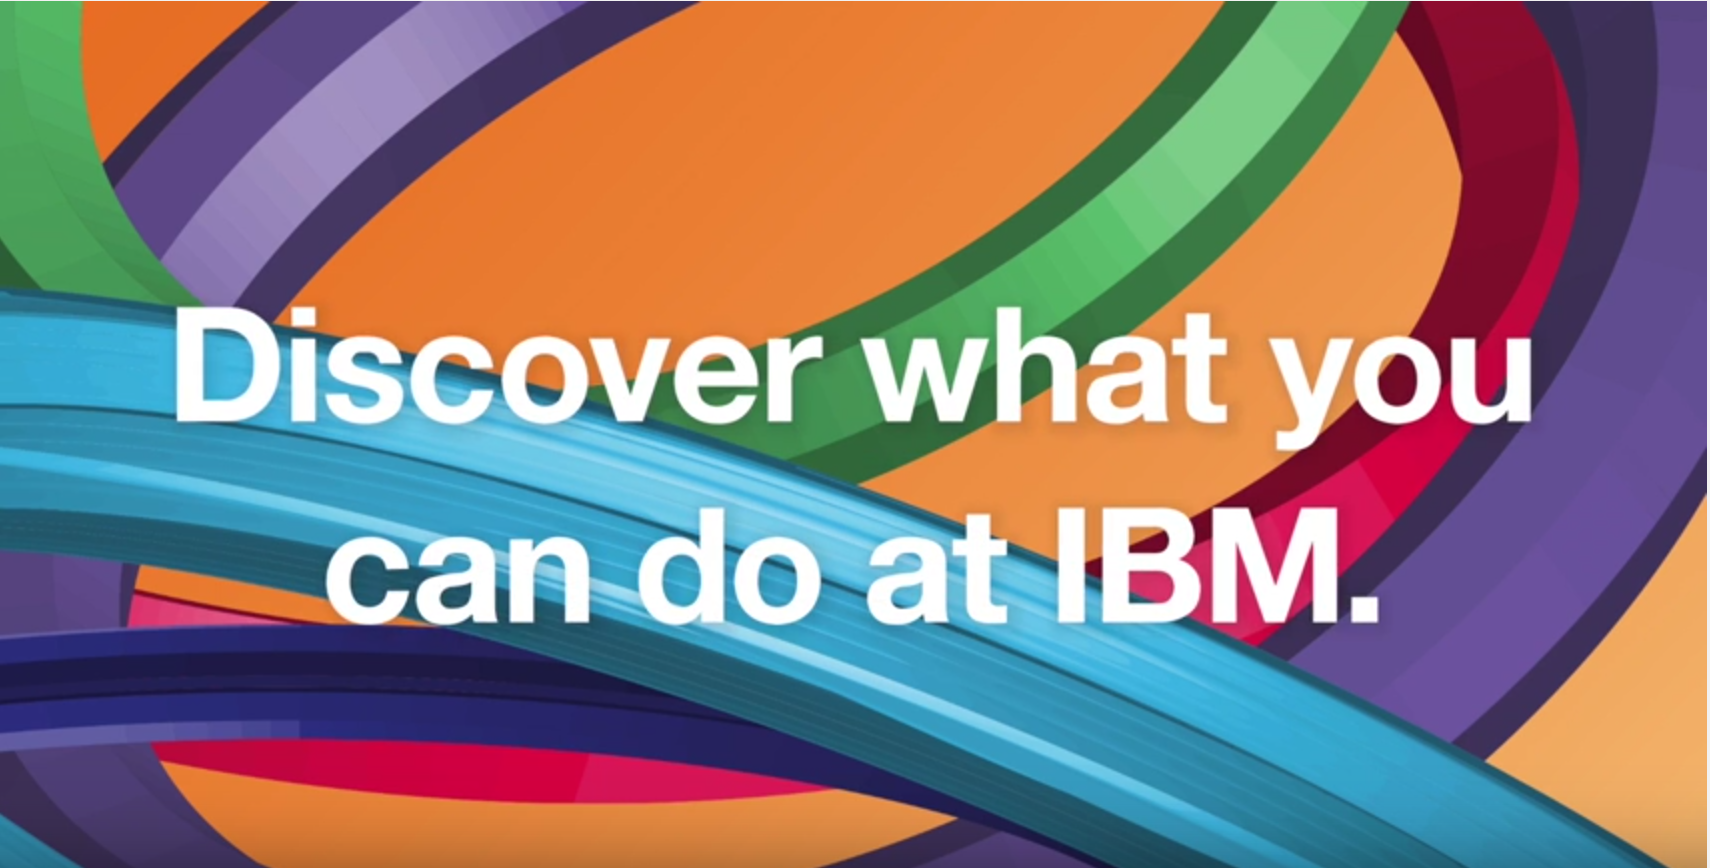 Discover what you can do at IBM